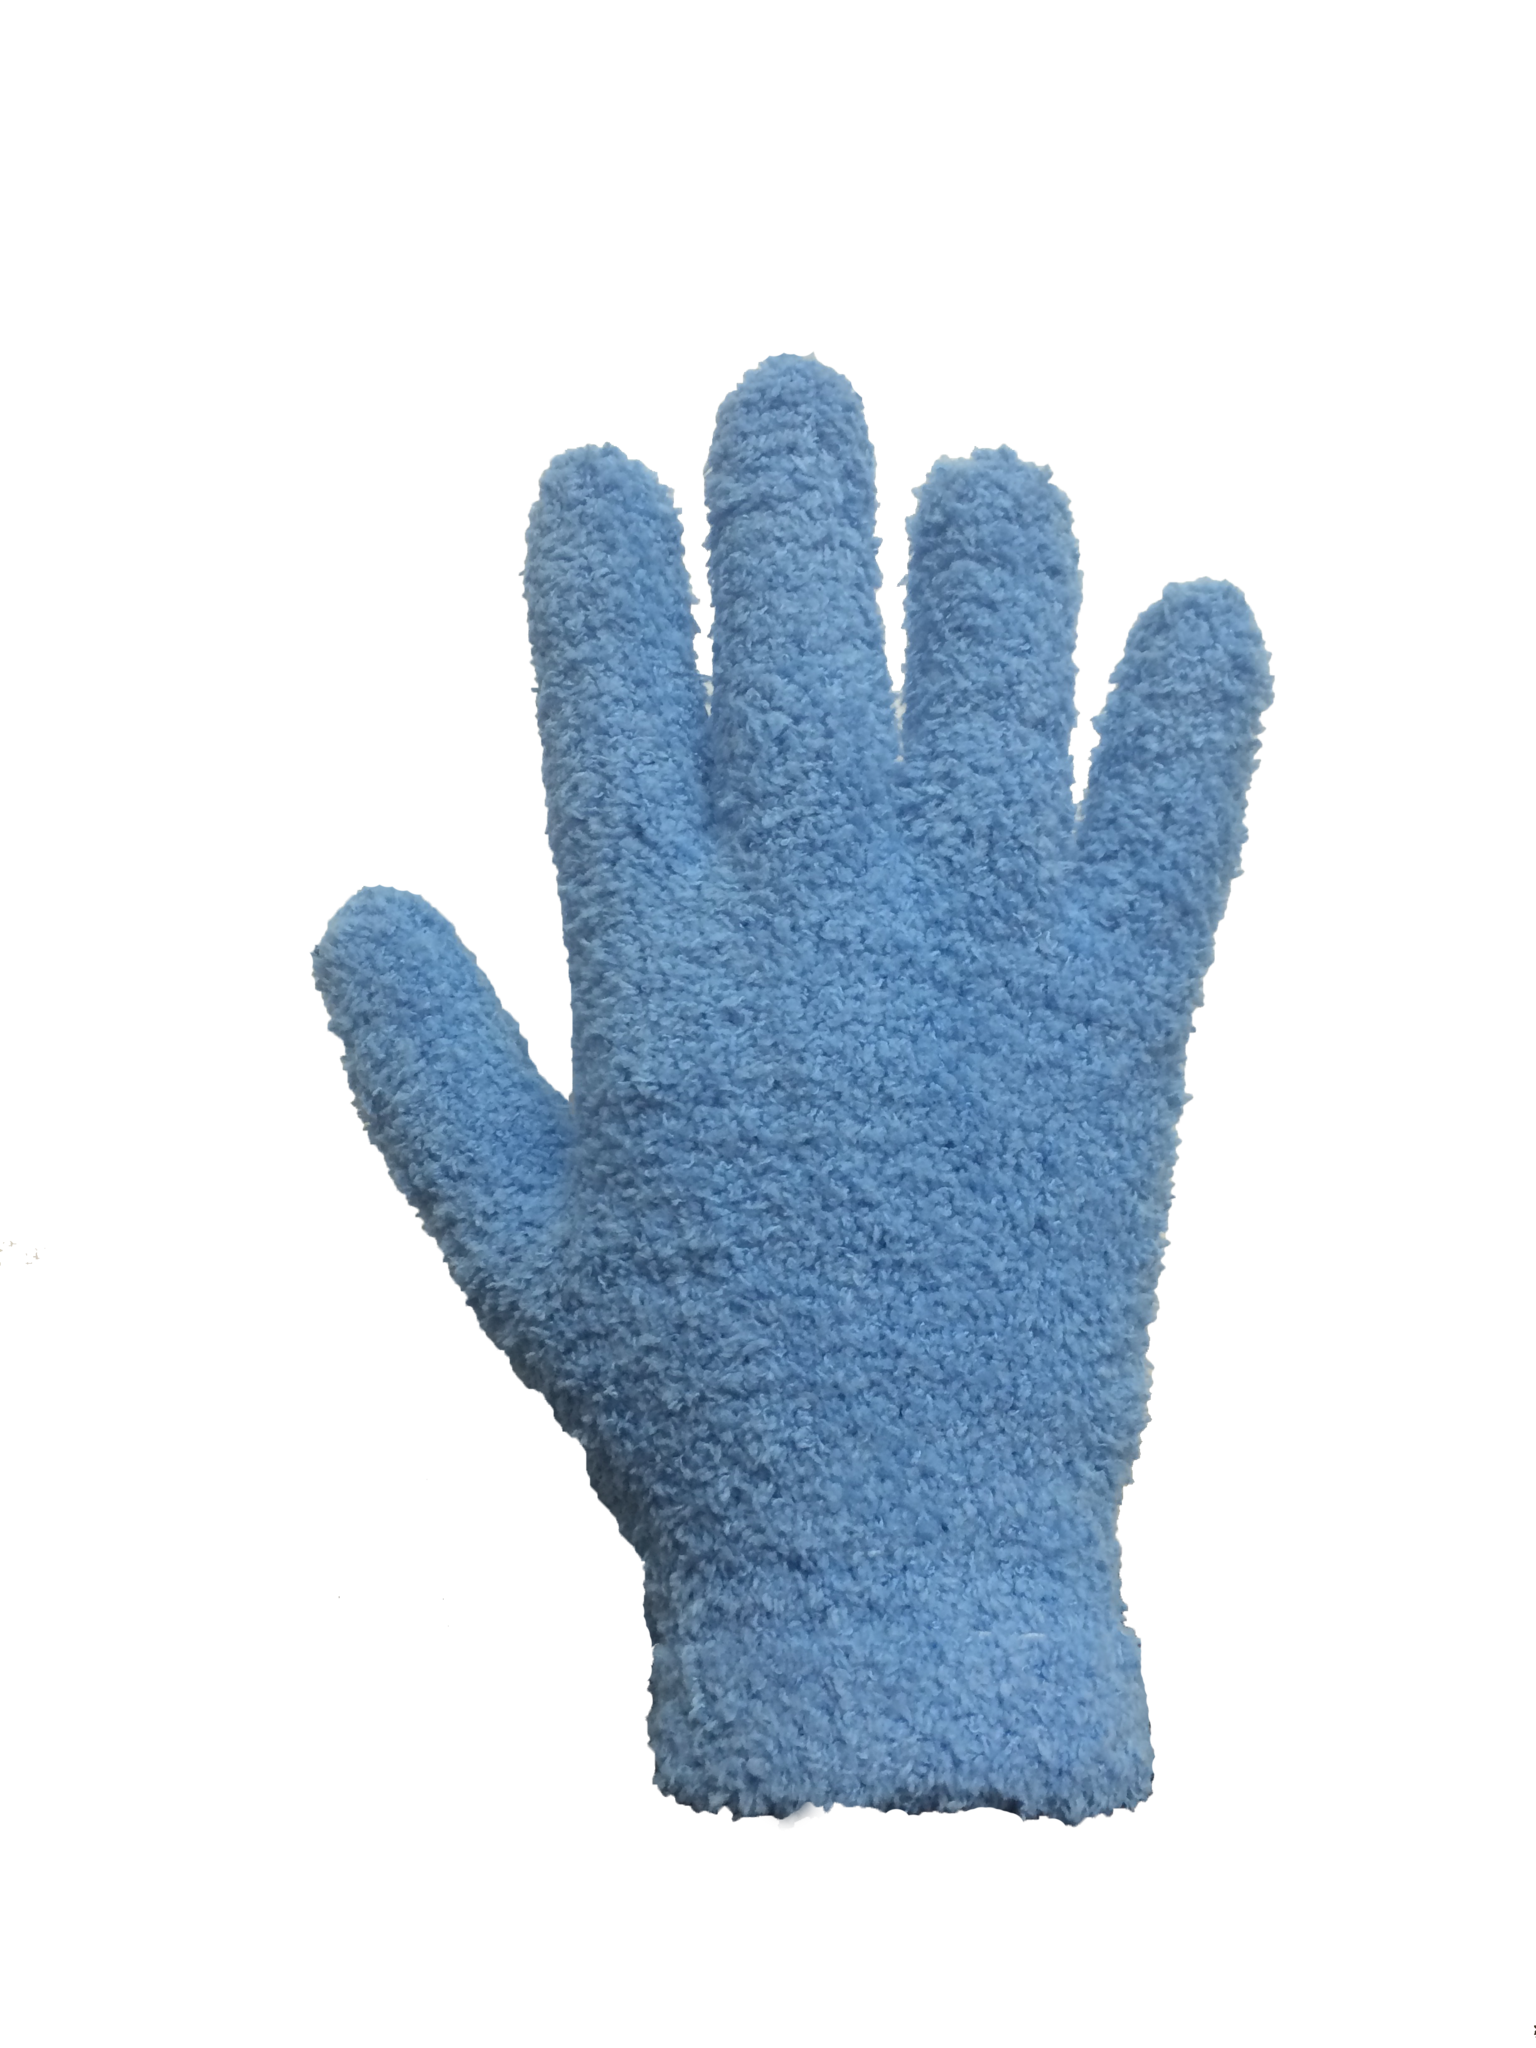 Winter Gloves HD Free Download Image PNG Image